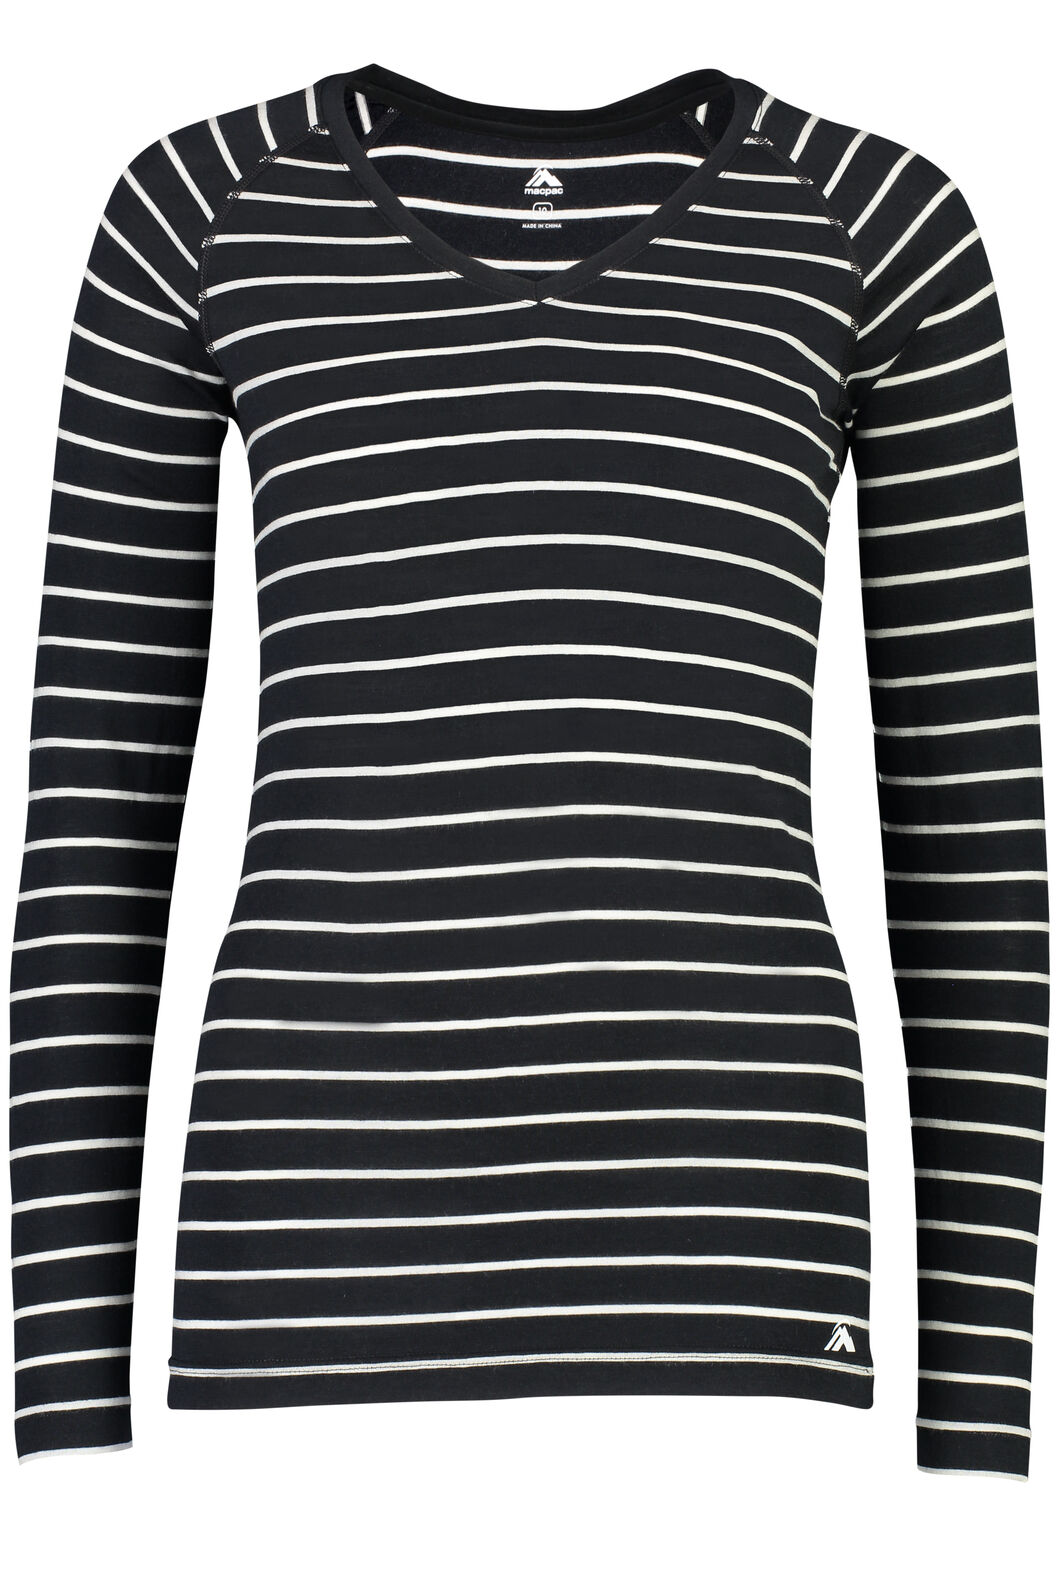 Macpac 150 Merino V-Neck Top - Women's, Black/White Stripe, hi-res